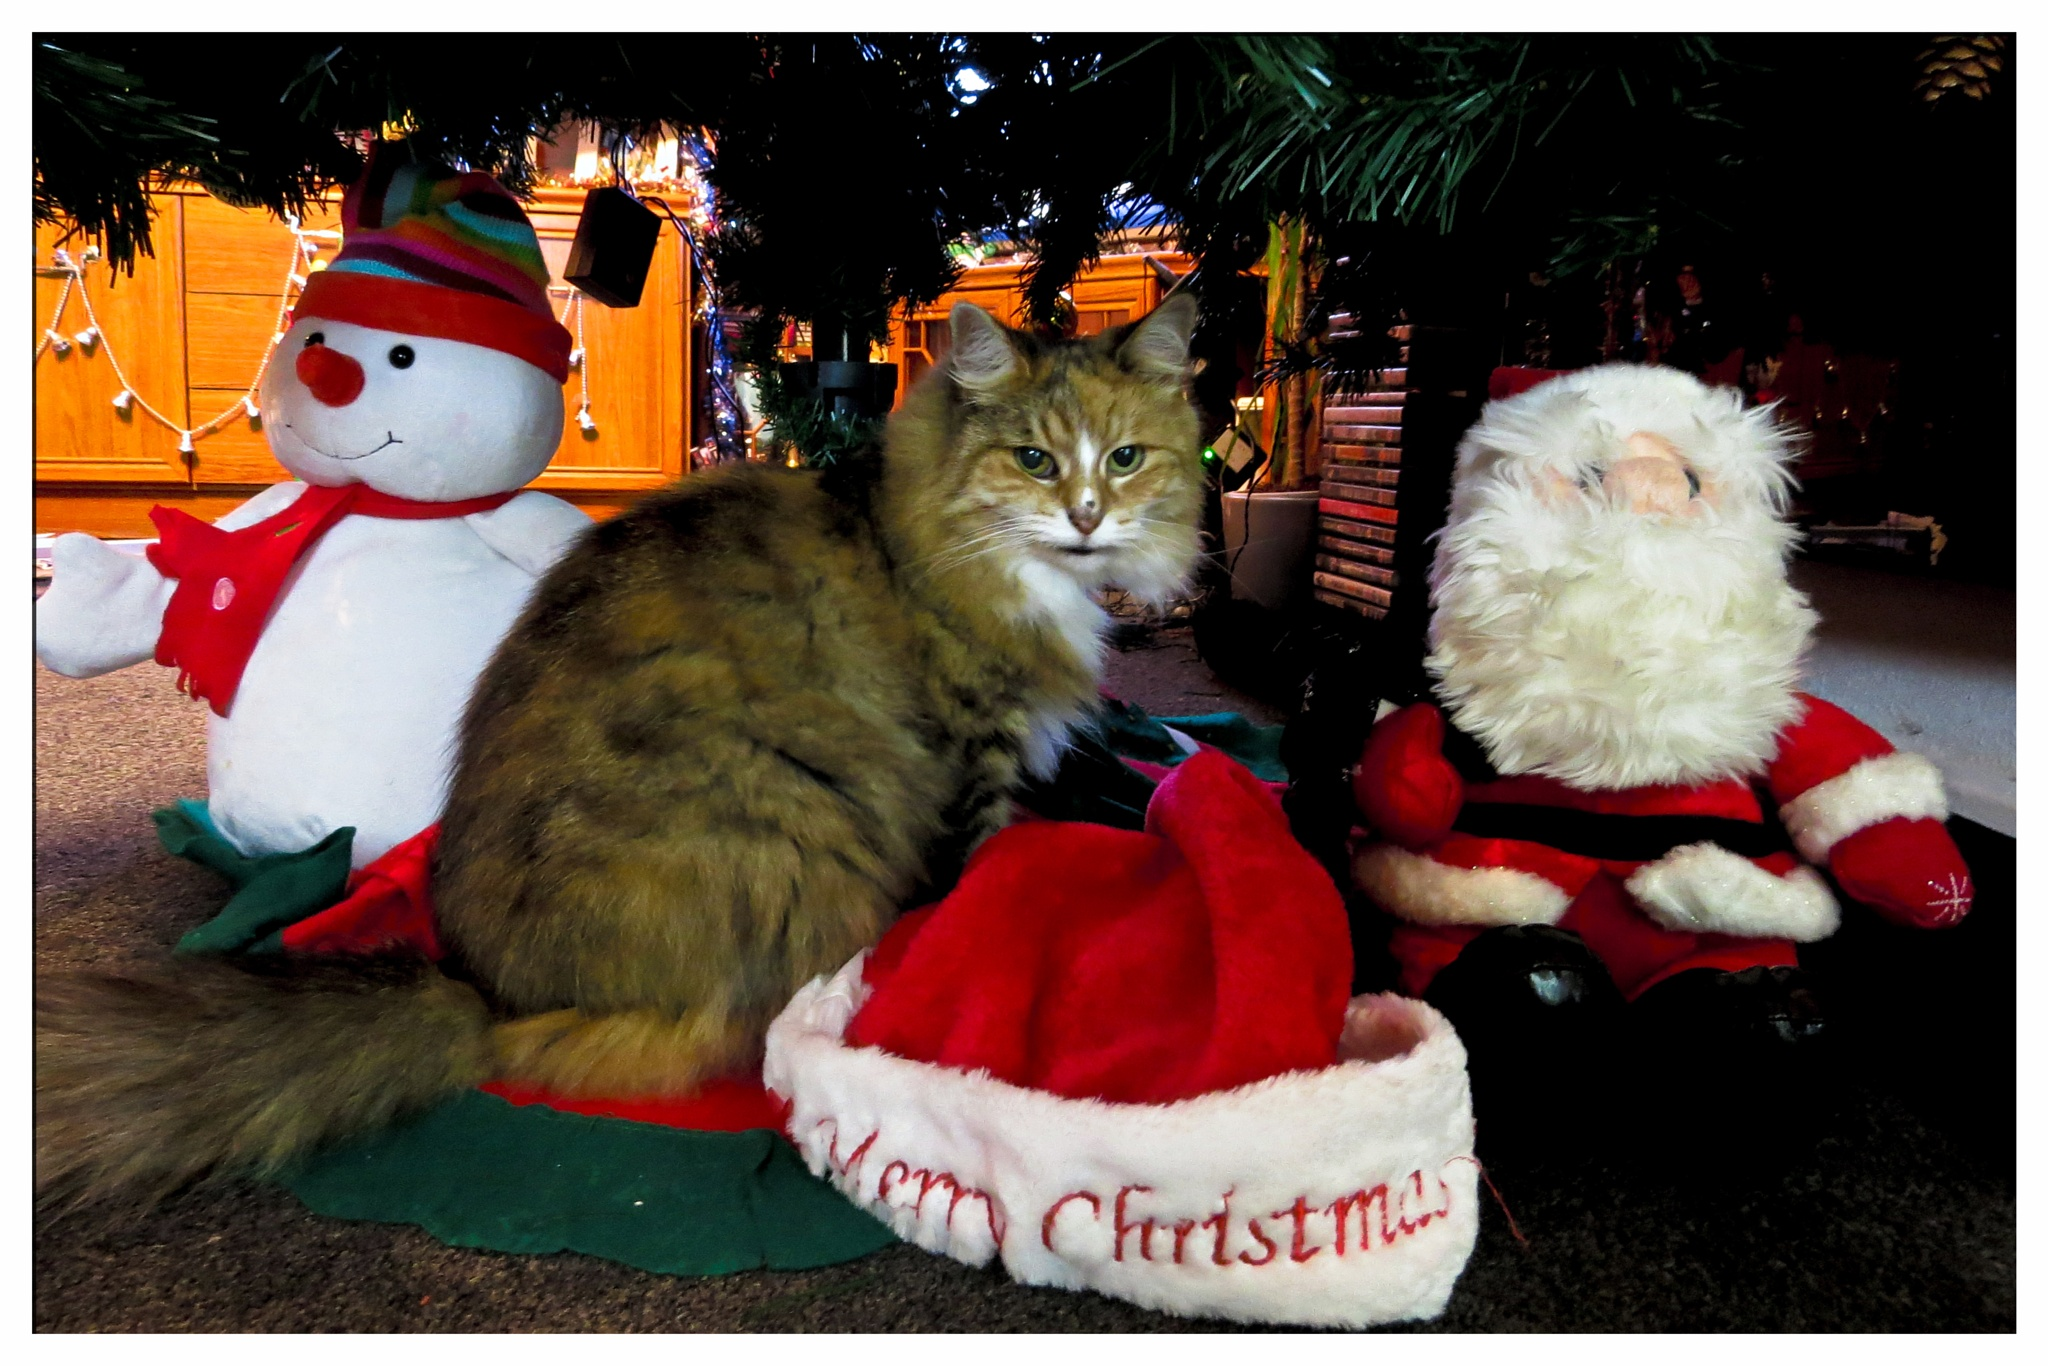 Rosie, my beautiful cat wishing you all a Very Merry Christmas. by June